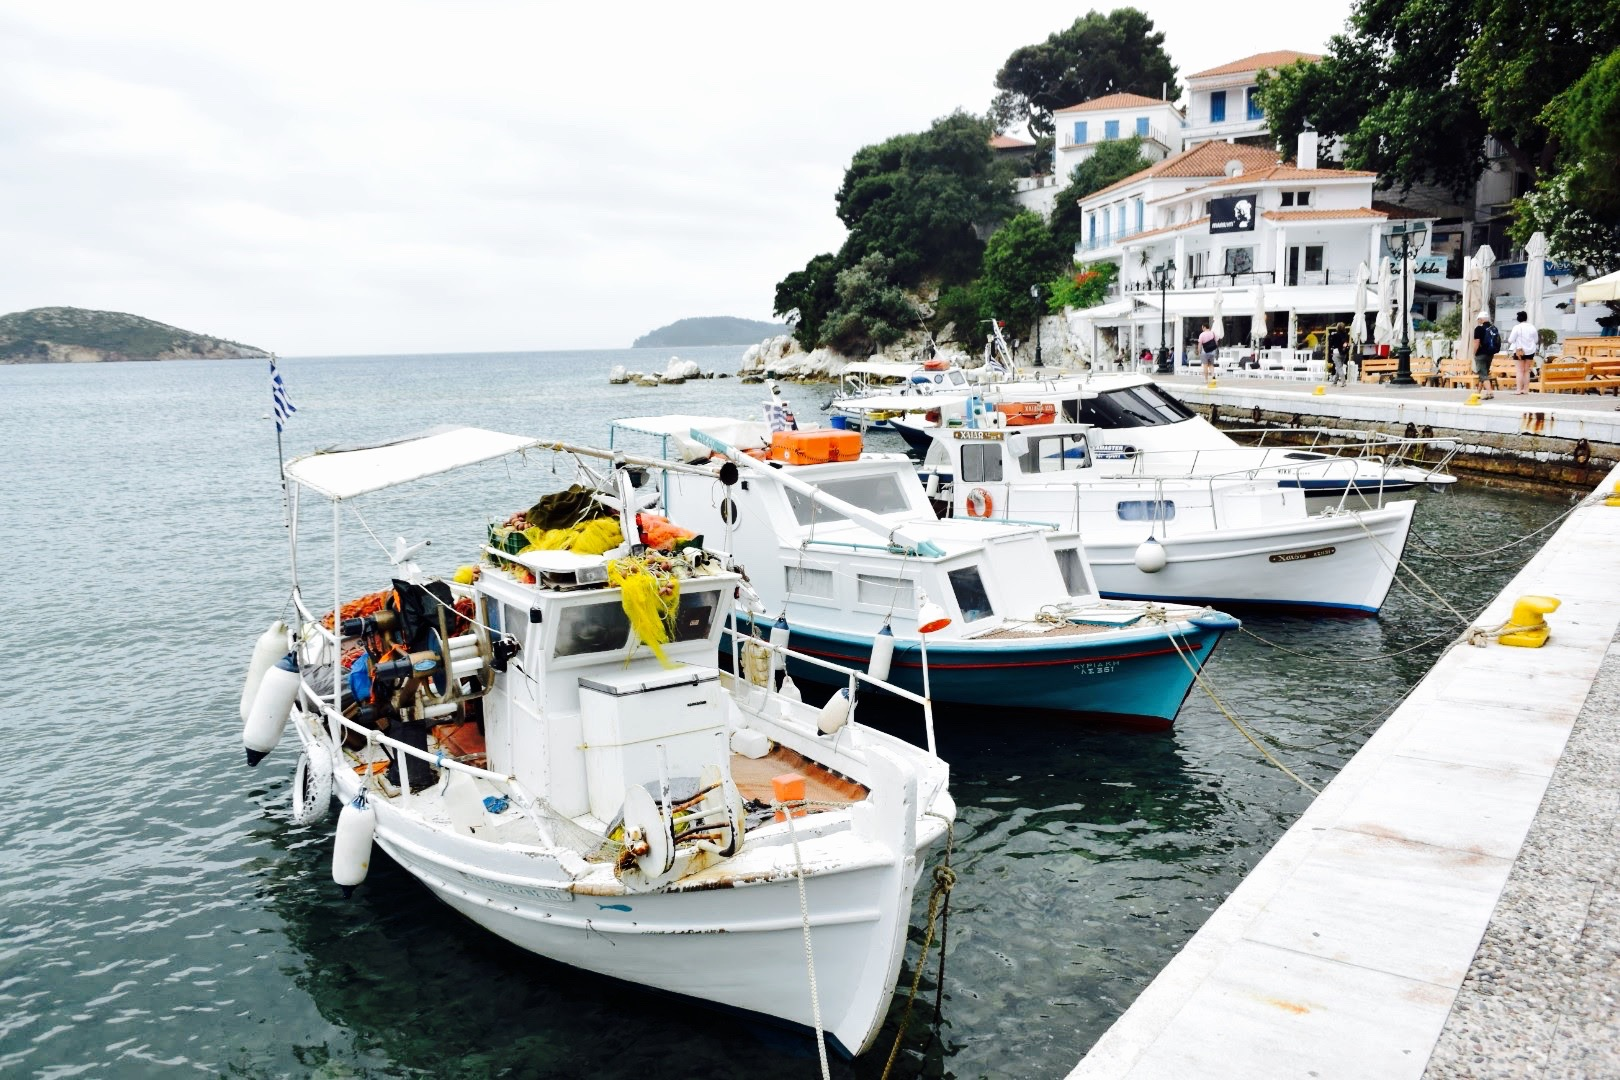 The beautiful old port at Skiathos town